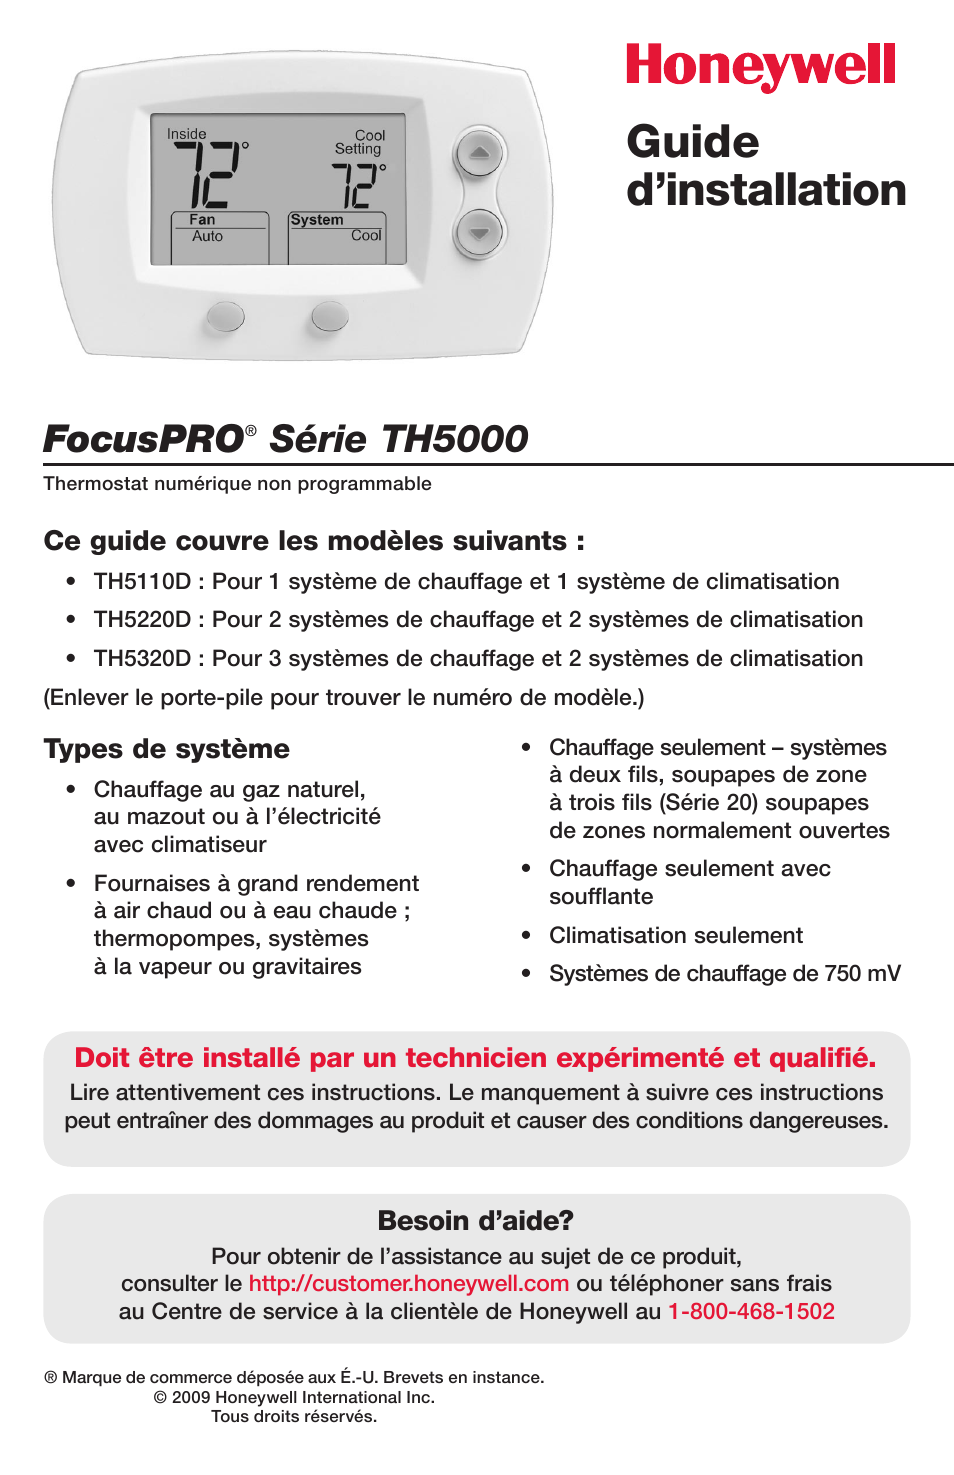 Guide d'installation, Focuspro, Série th5000 | Honeywell FocusPRO TH5000  Series User Manual